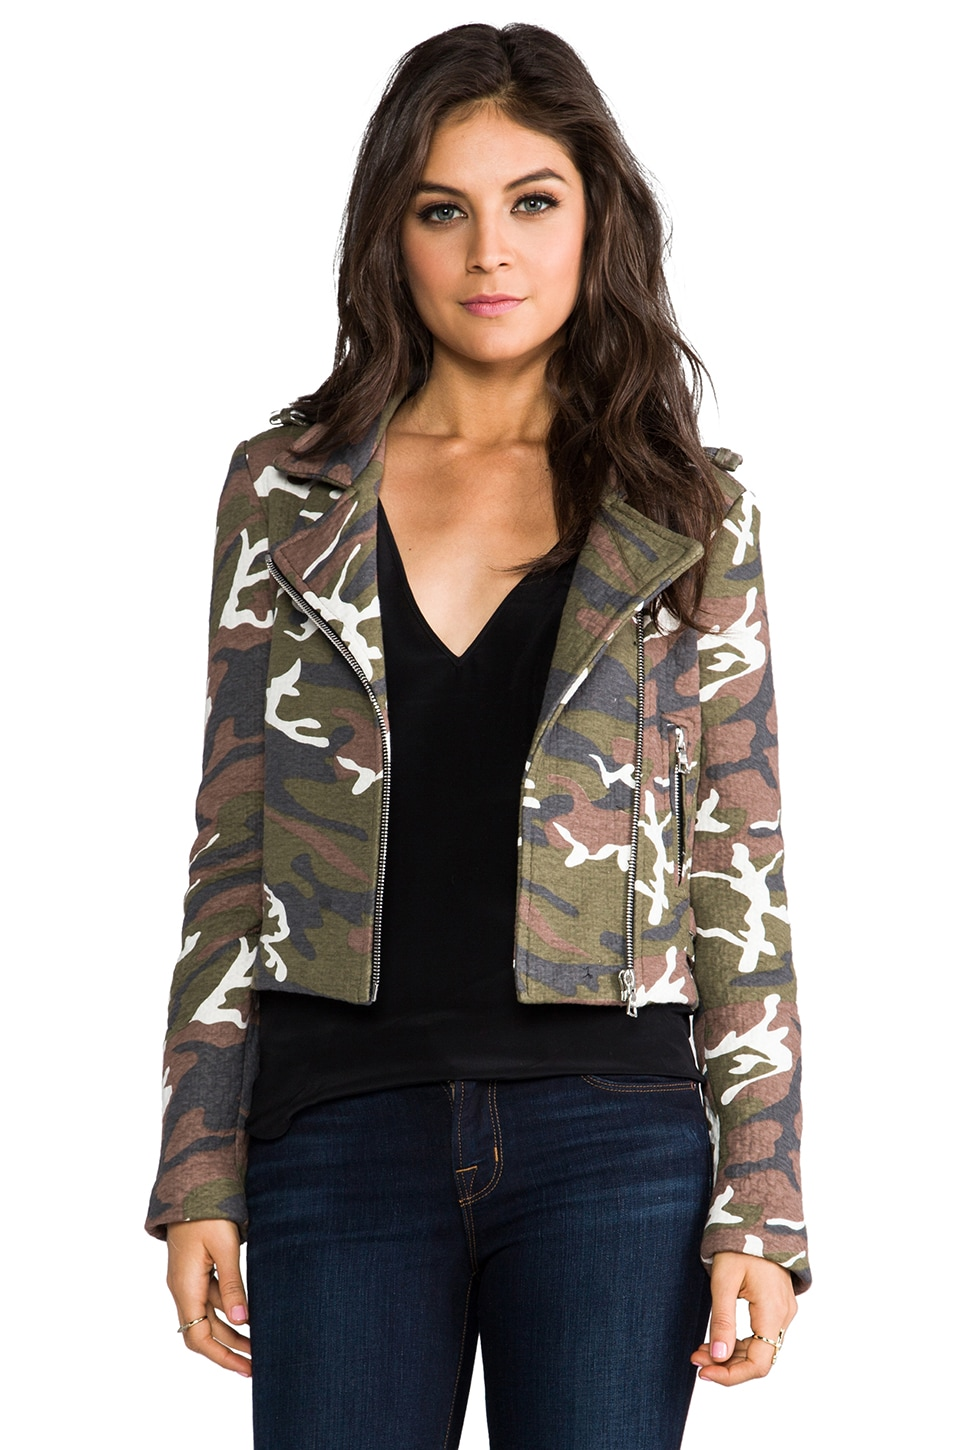 Alexis JP Biker Jacket in Quilted Camouflage